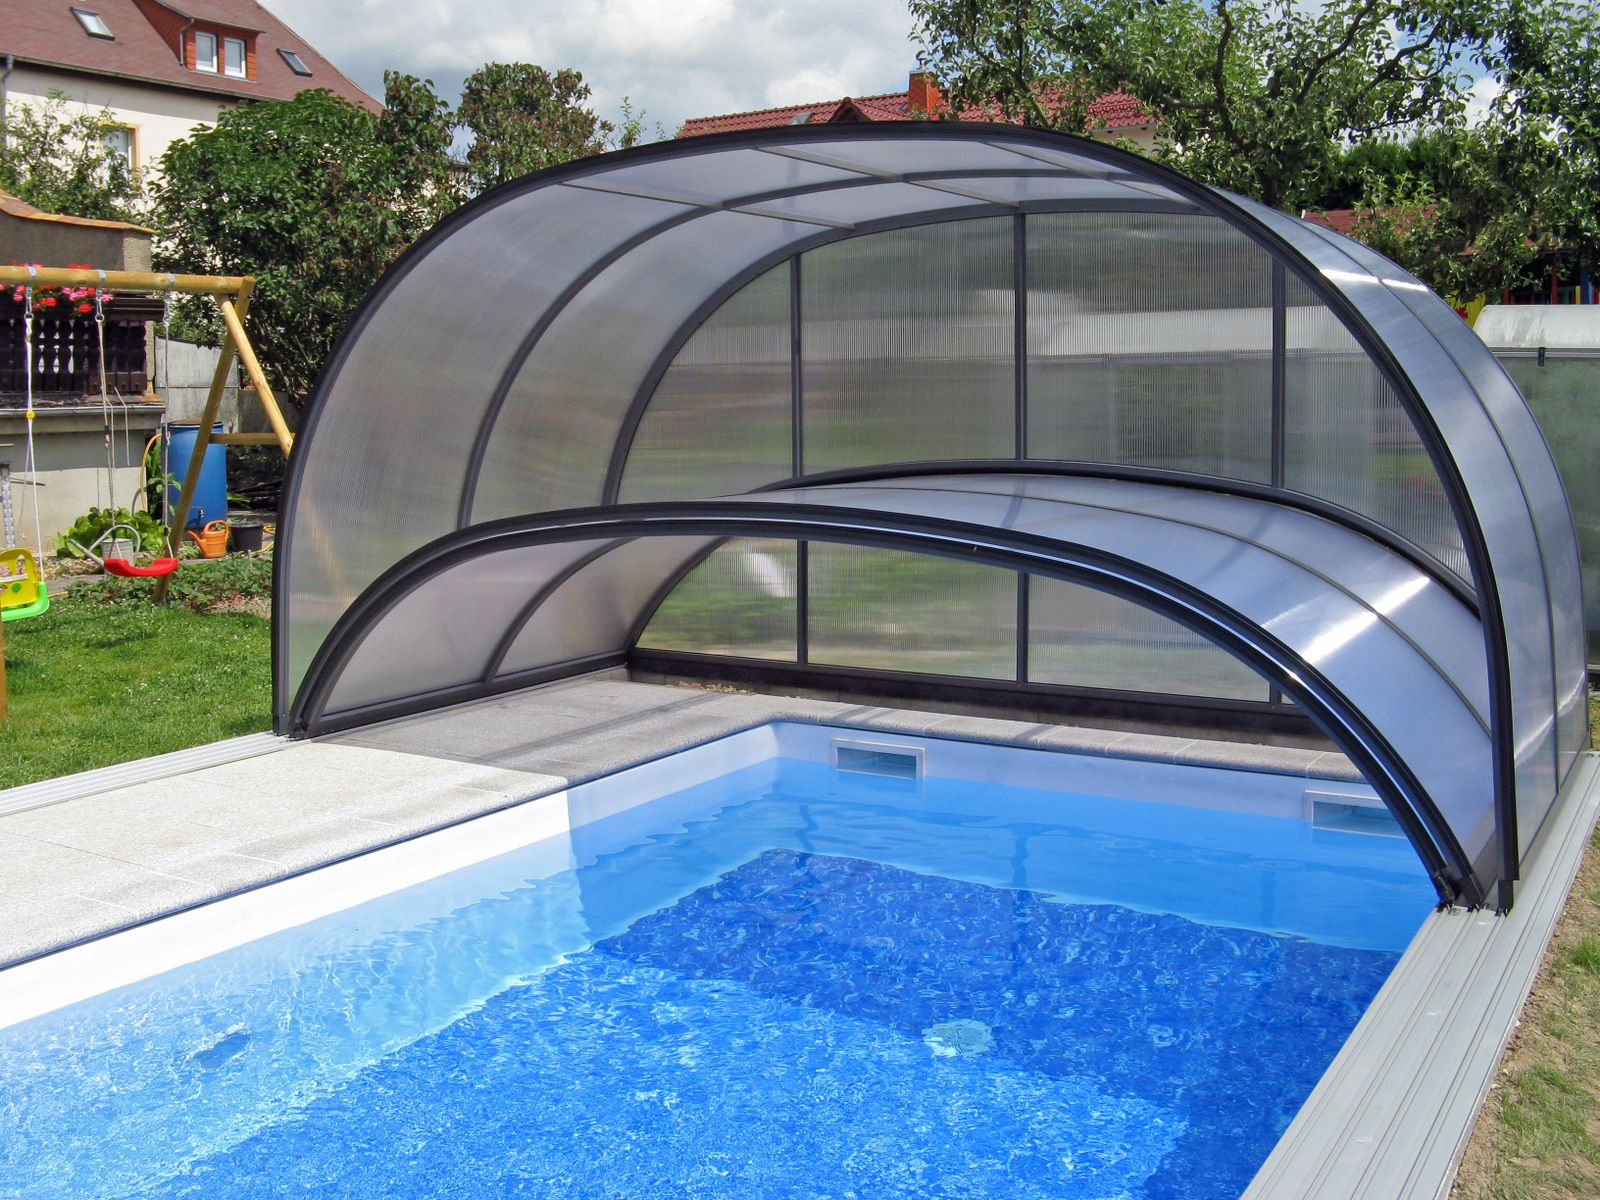 Folded Swimming Pool Enclosure Combi With One High And One Low Part Pool Enclosures Swimming Pool Enclosures Pool